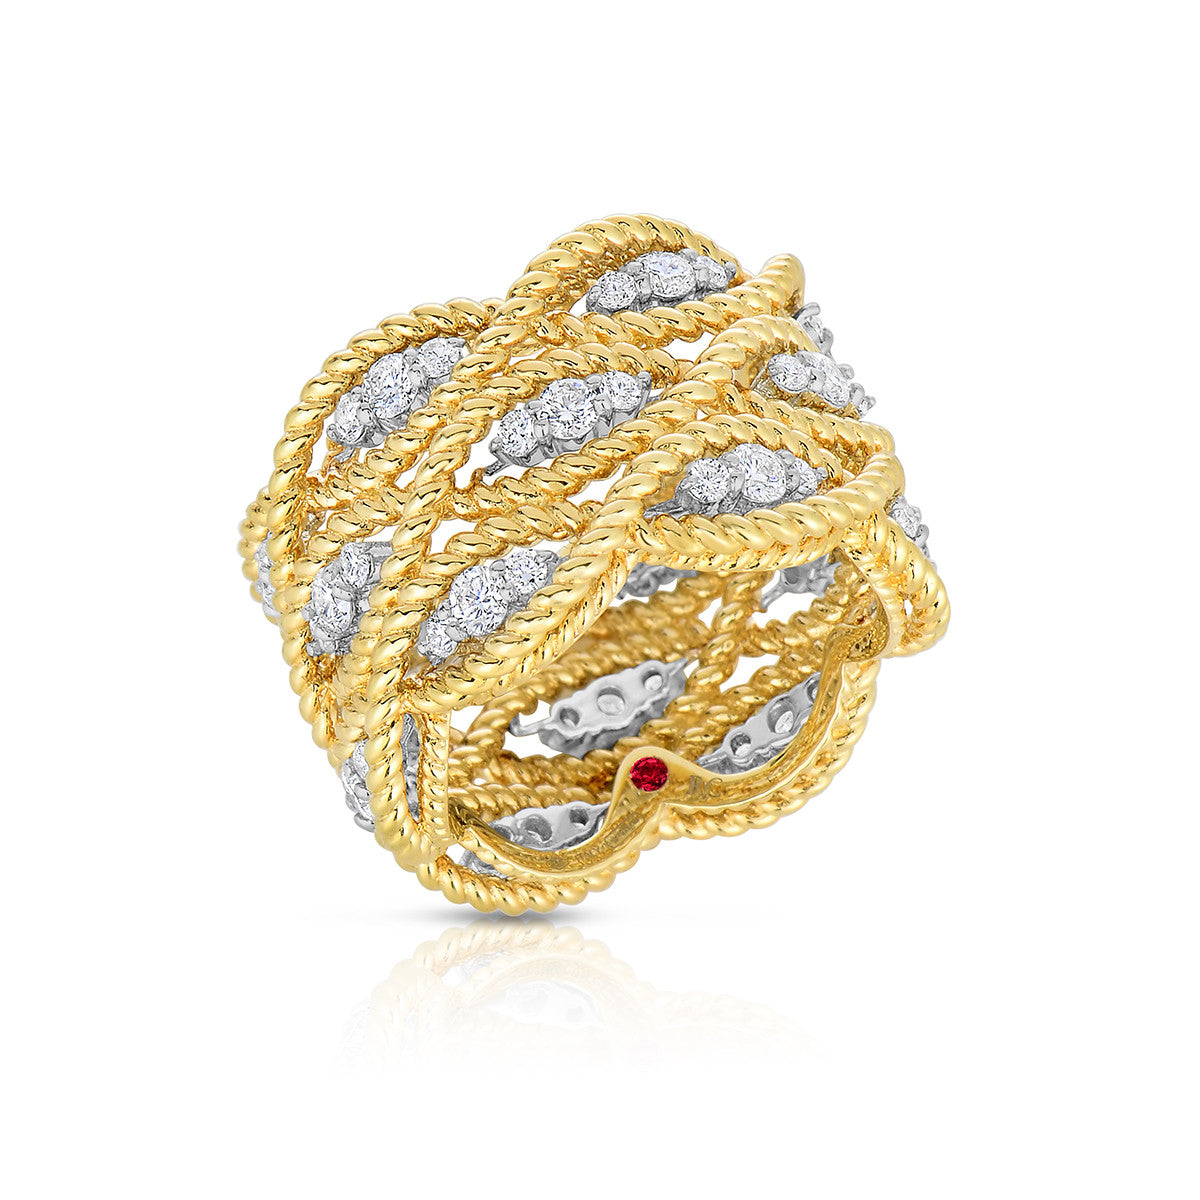 18K Yellow and White Gold Barocco 3 Row Diamond Ring